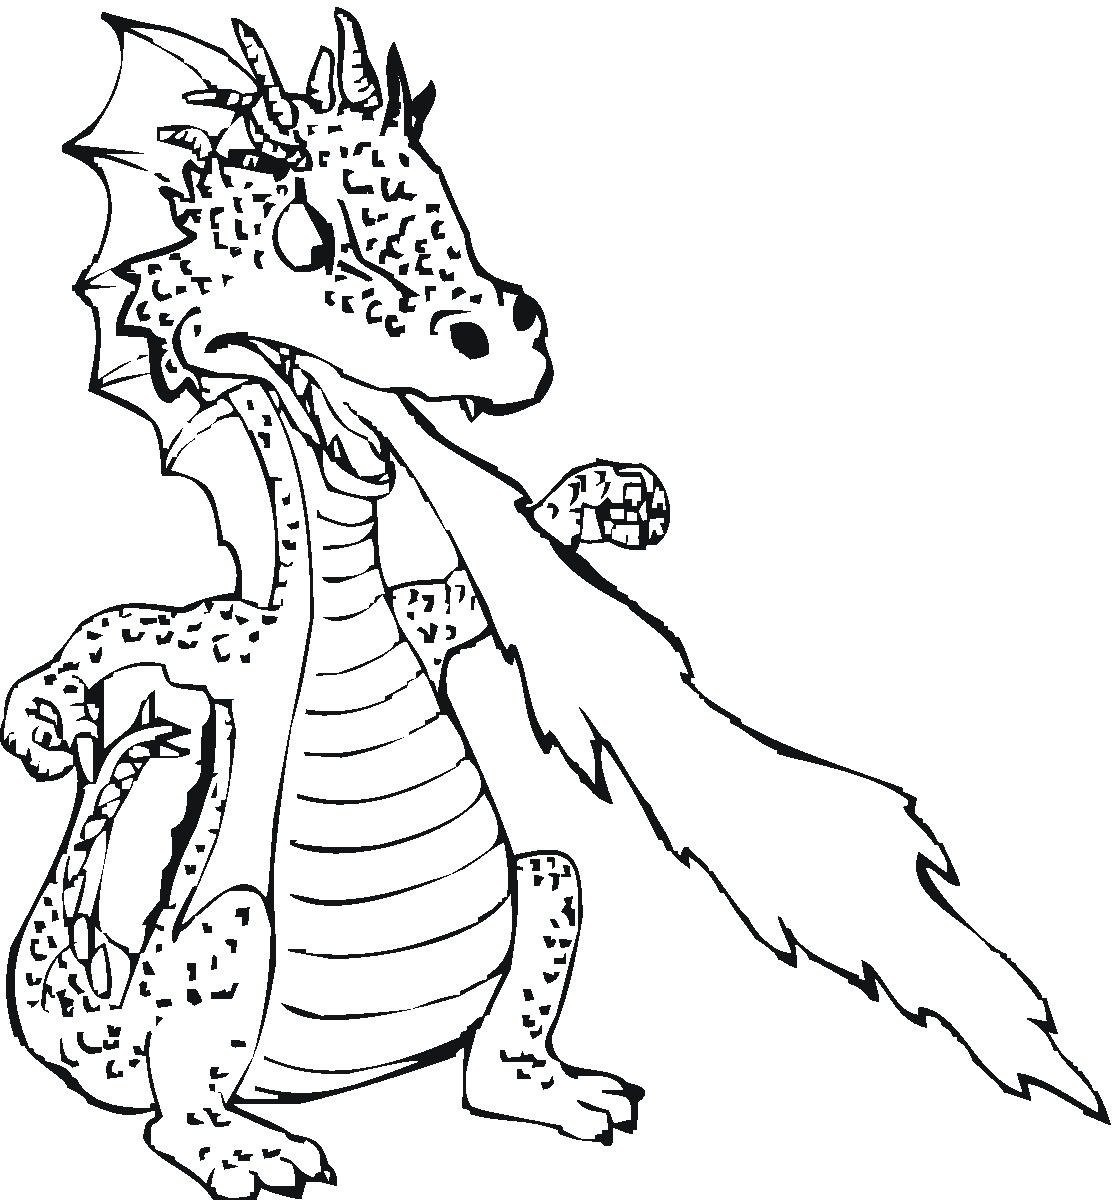 Dinosaur Coloring Dacentrurus together with Ninjago Green Ninja Valentine besides Sea Monster Coloring Pages further Dragon Coloring Pages furthermore Alien Coloring Pages Printable. on scary godzilla coloring pages